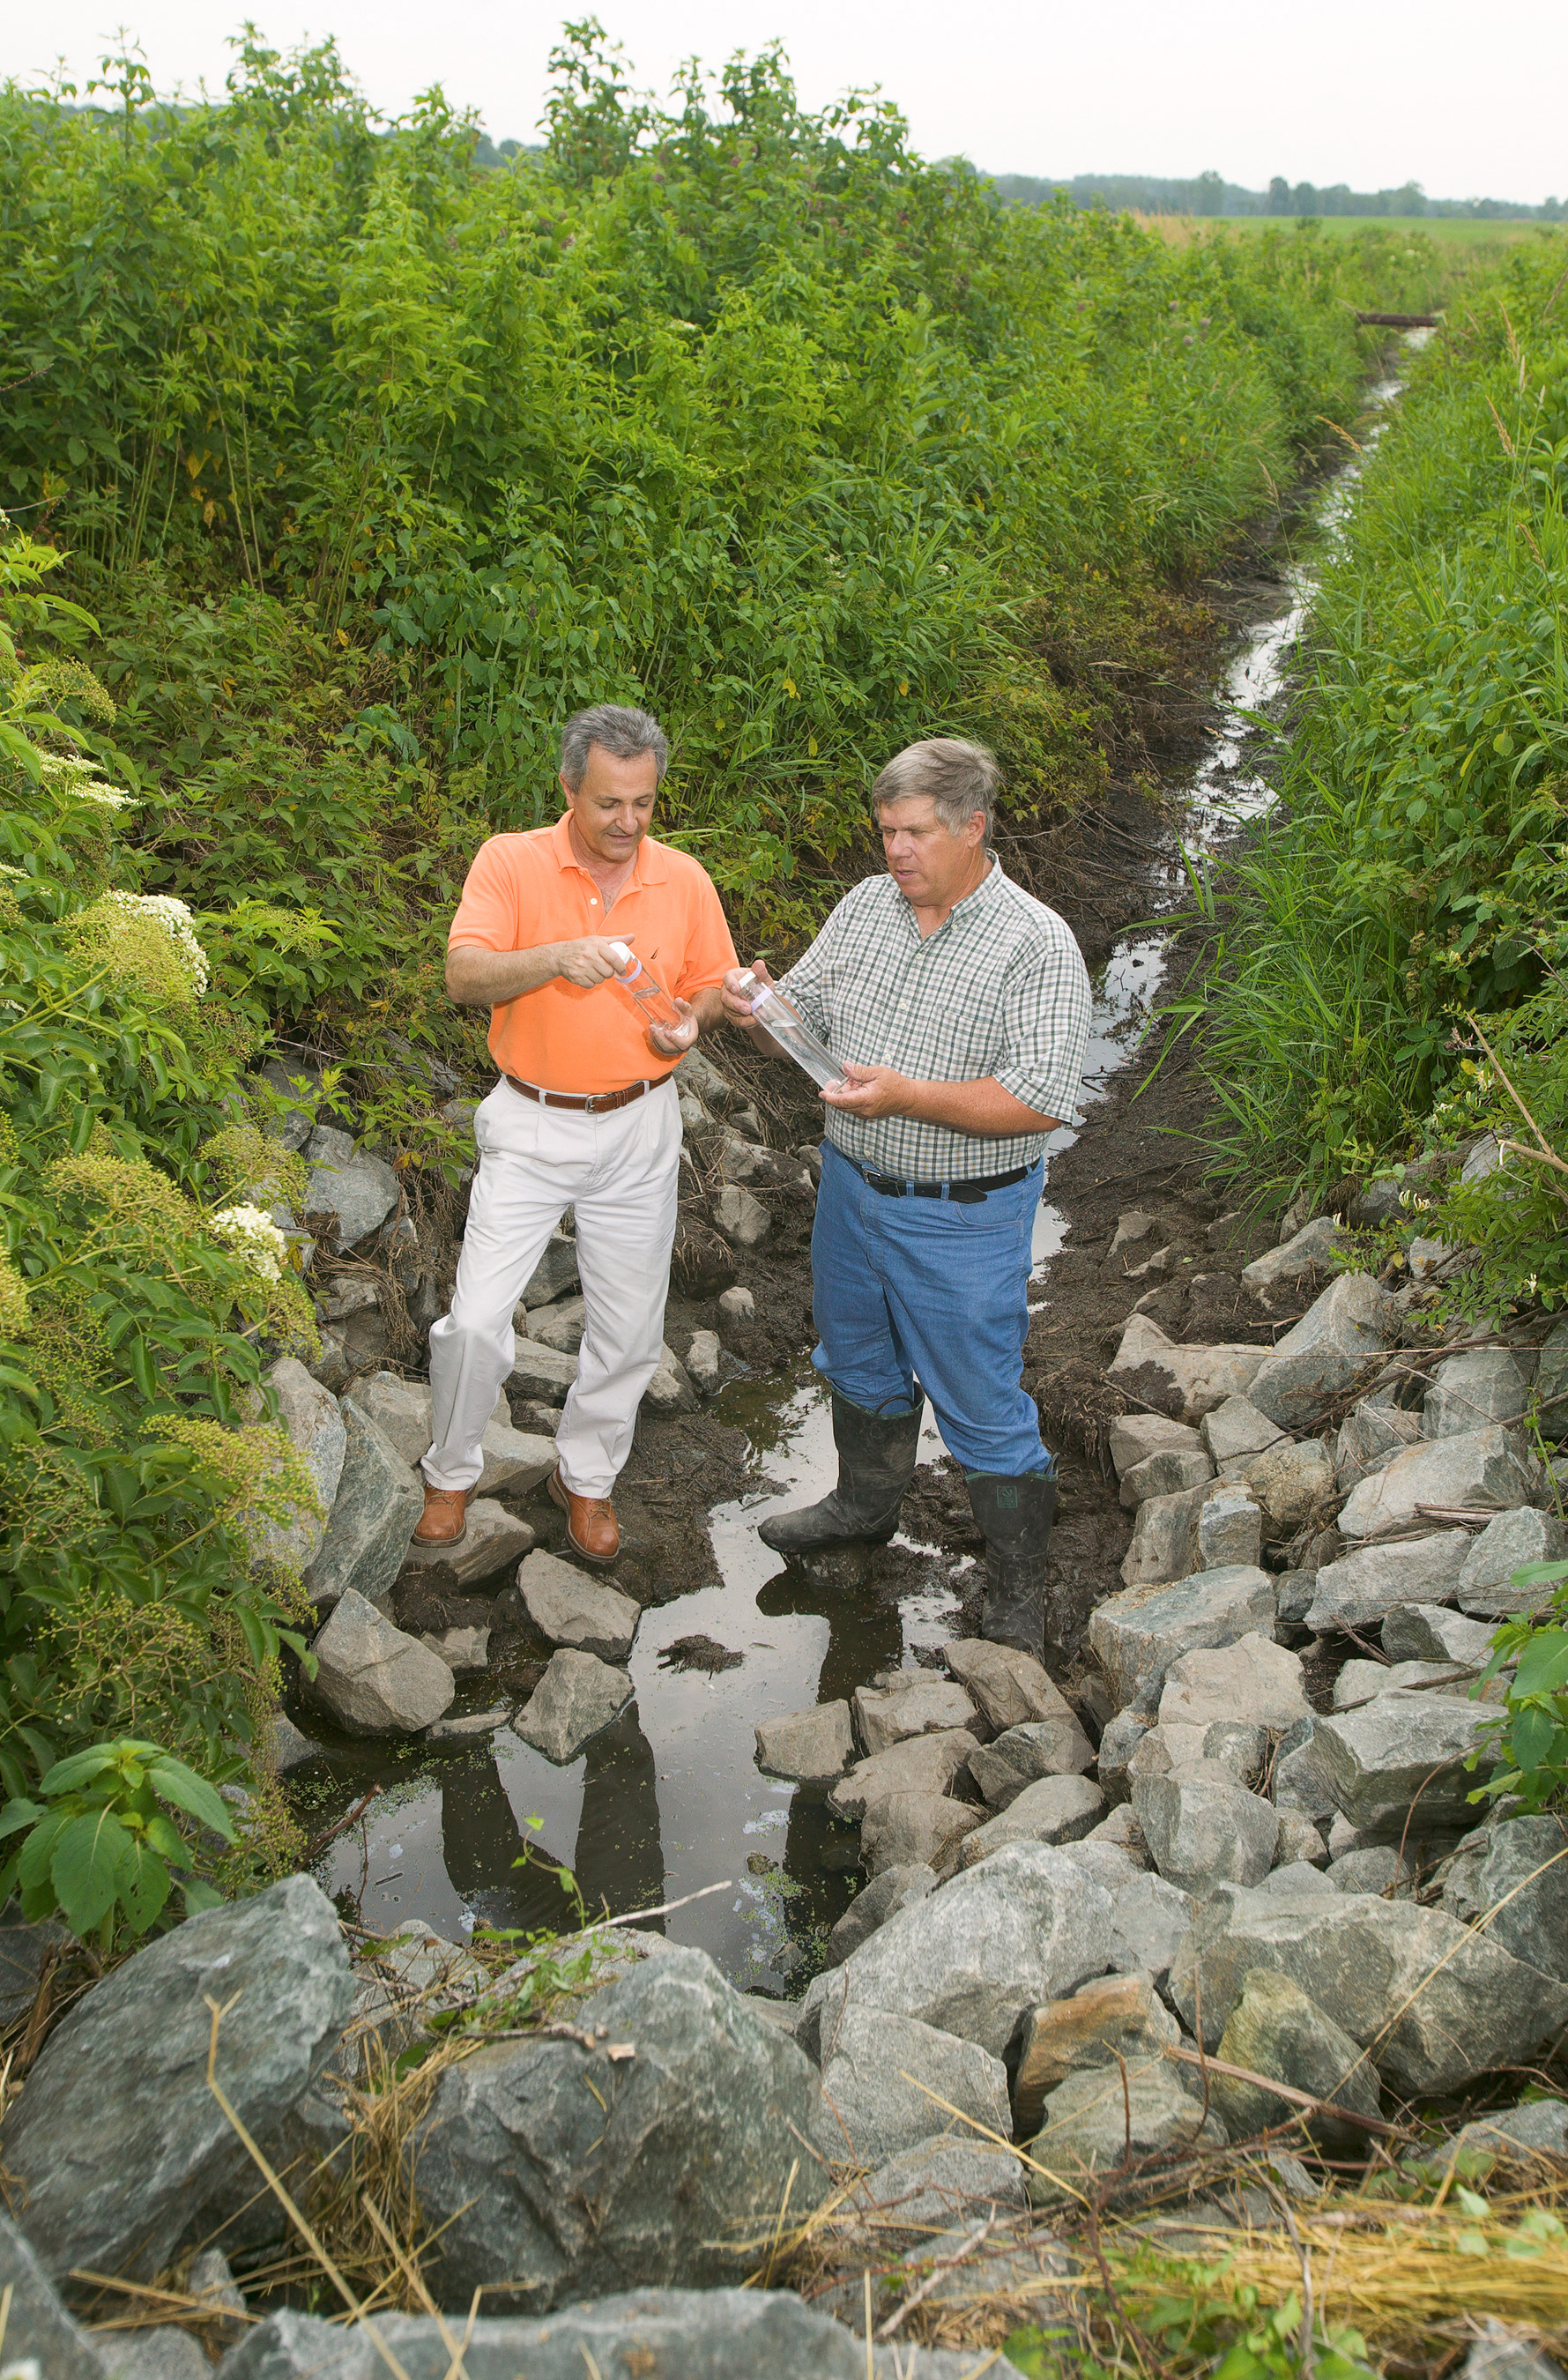 Water quality assessment, Photo by Agricultural Research magazine